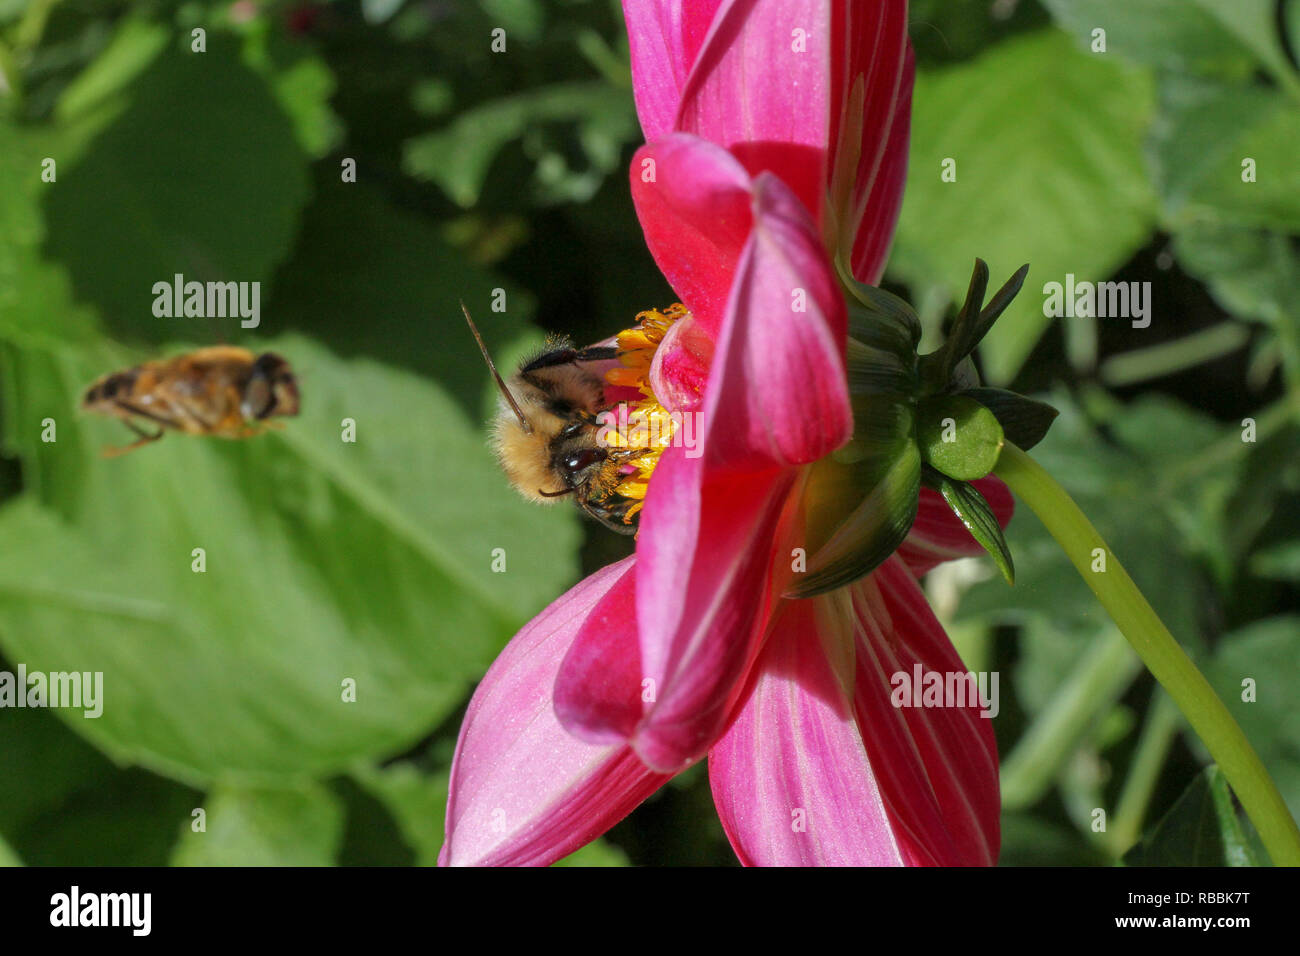 A UK garden bee collecting pollen from a cerise coloured dahlia flower. - Stock Image